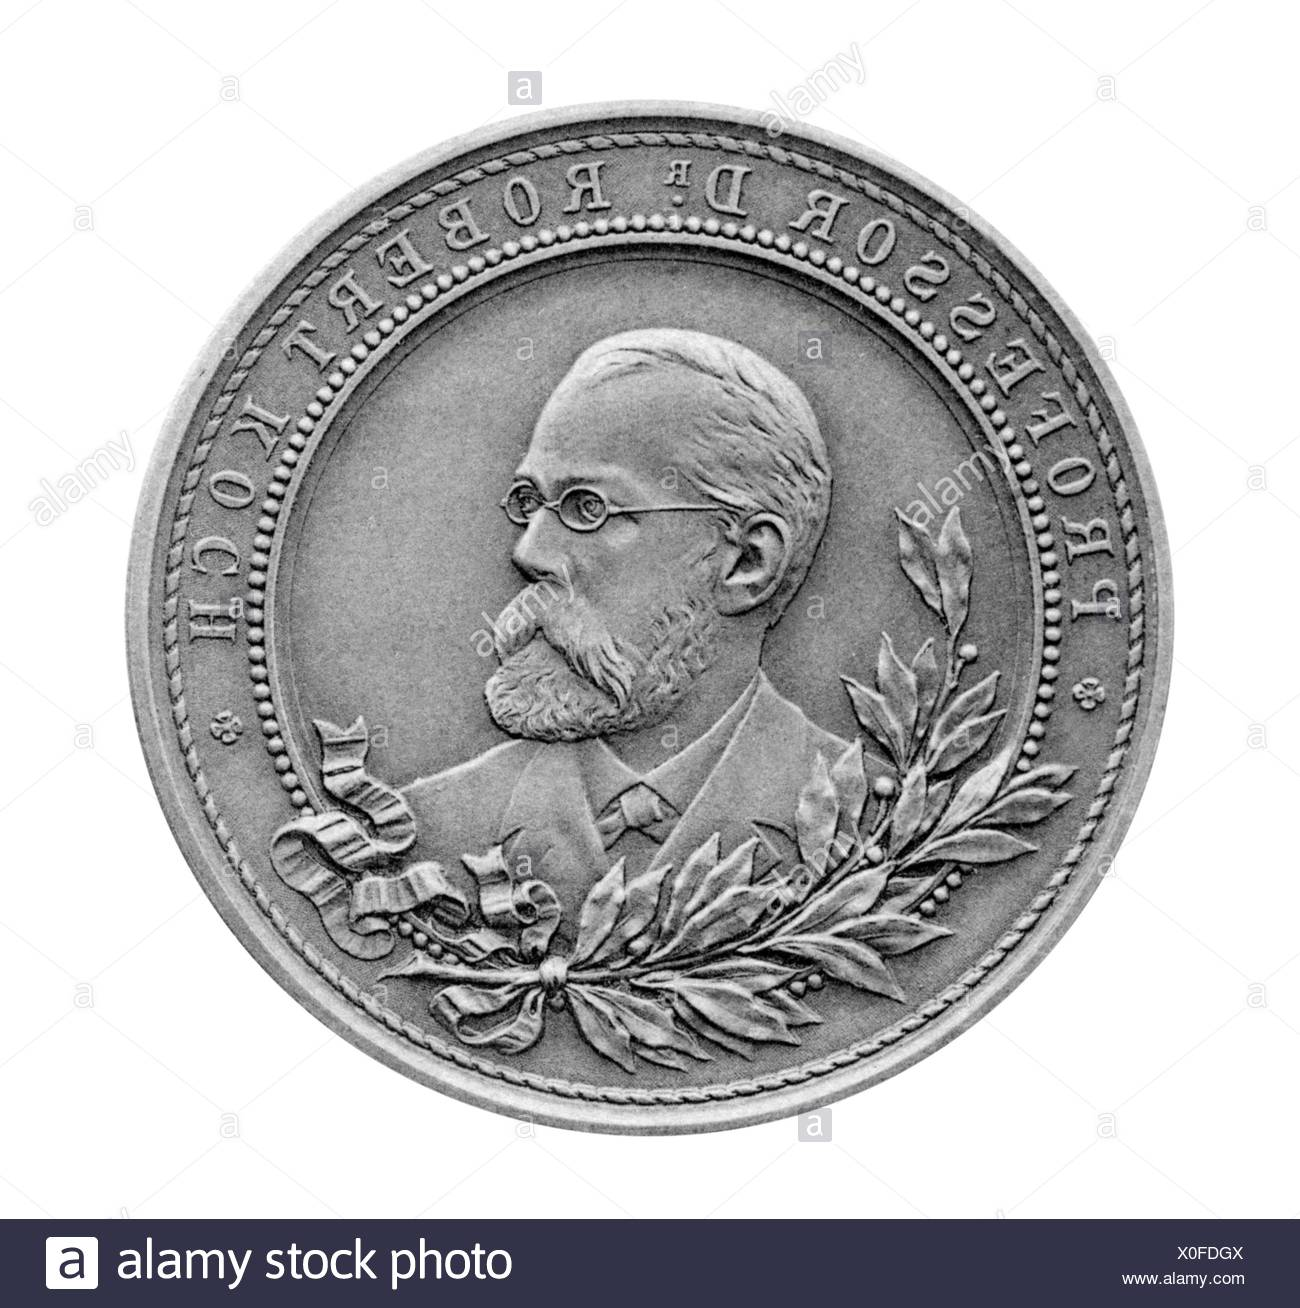 Koch, Robert, 11.12.1843 - 27. 5.1910, German bacteriologist, portrait, medal, obverse, Stuttgarter Metallwarenfabrik Mayer & Wilhelm, famous men series, Stuttgart, circa 1900, Additional-Rights-Clearances-NA - Stock Image